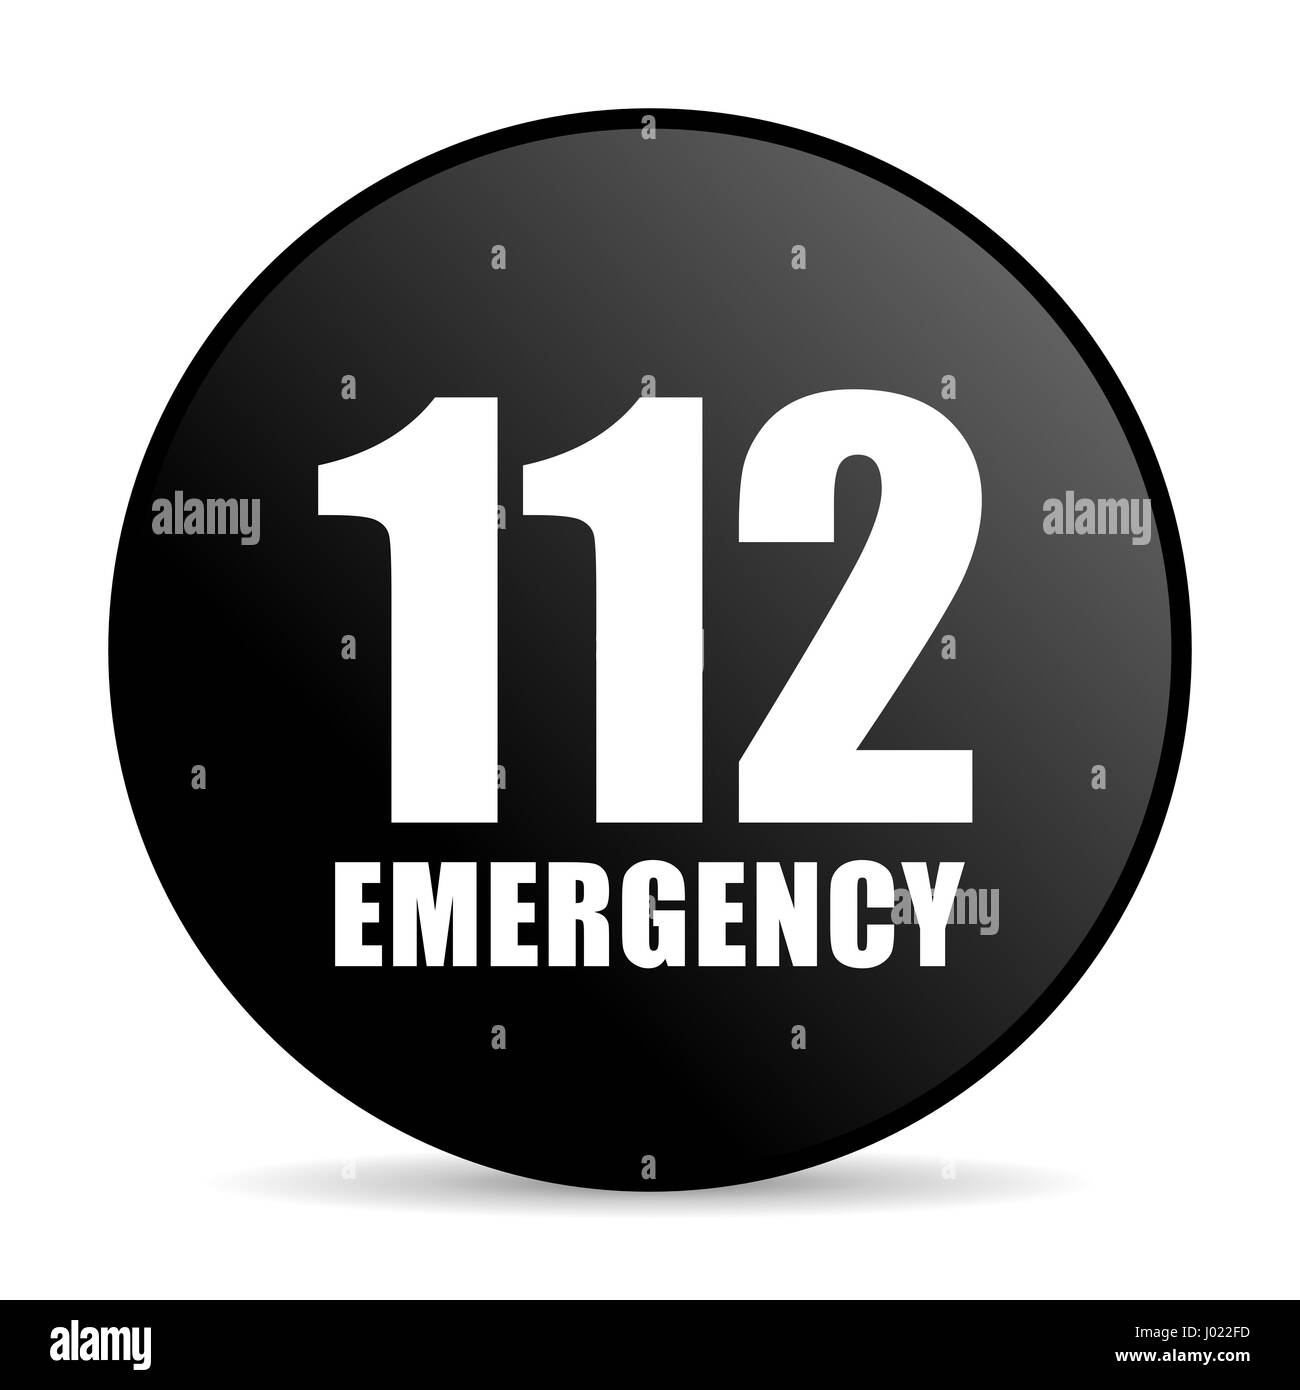 Number emergency 112 black color web design round internet icon on white background. - Stock Image